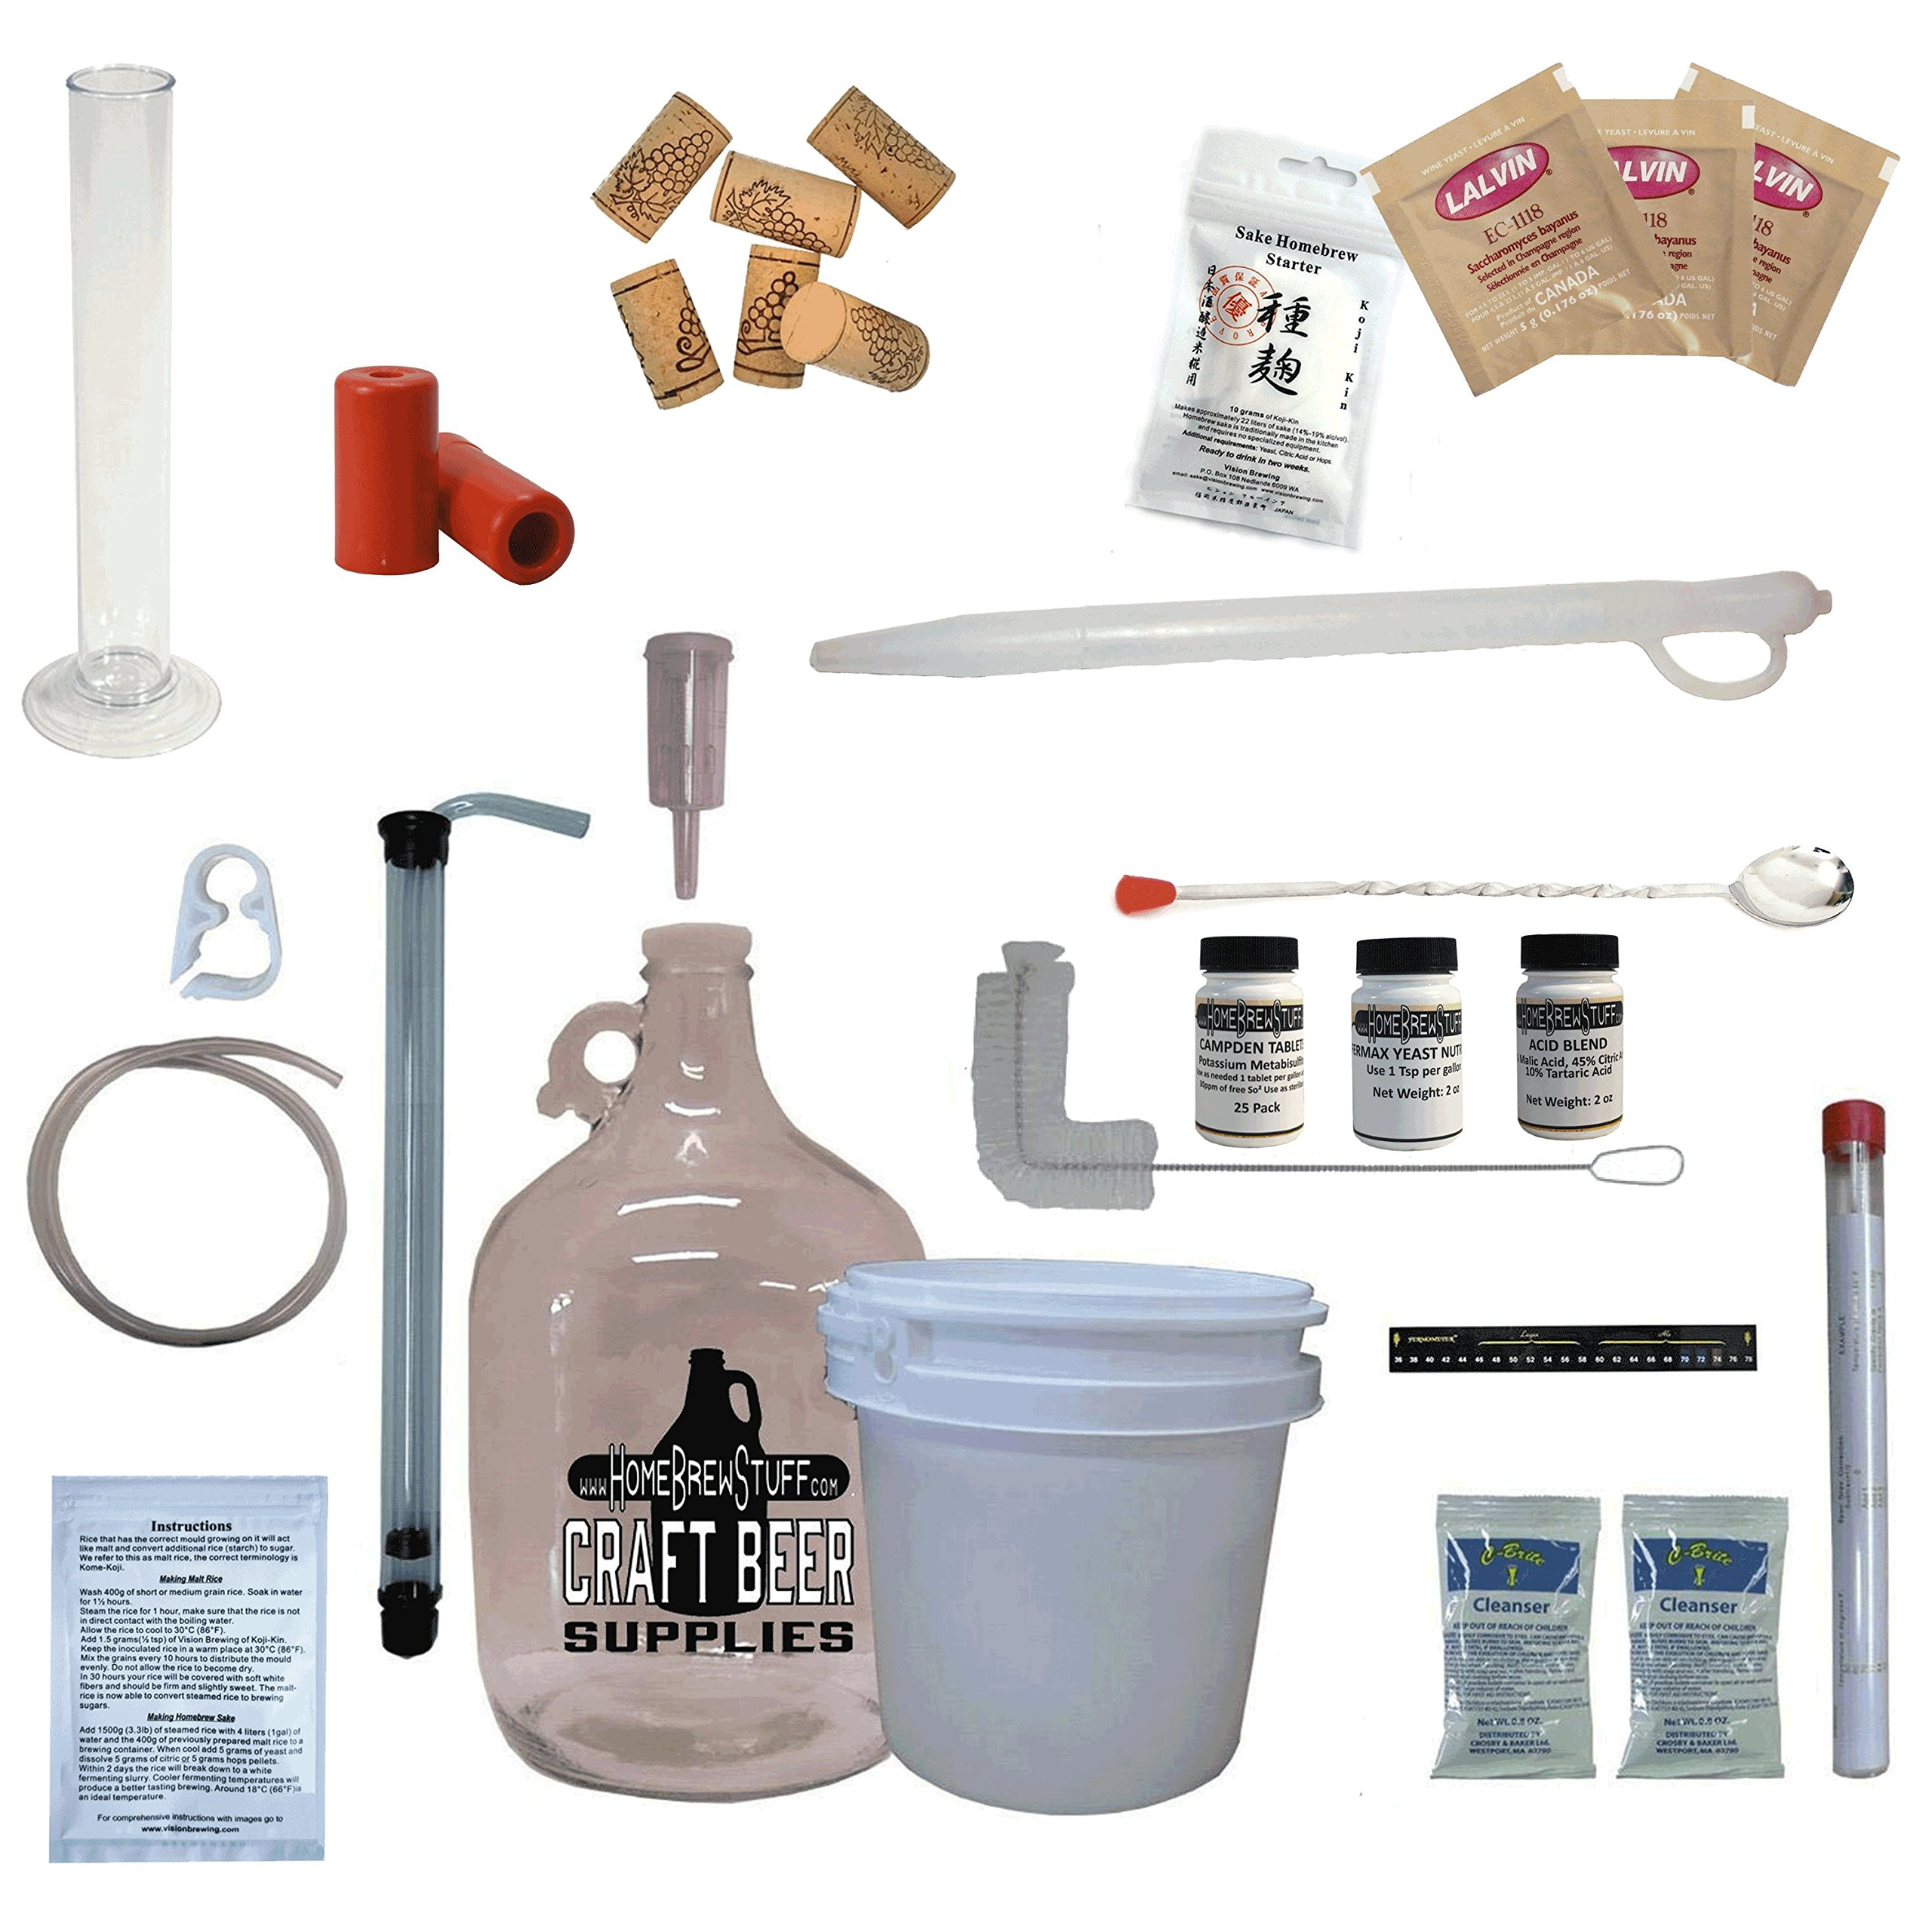 HomeBrewStuff Table Top Nano-Sake Equipment Kit With Koji-Kin Culture